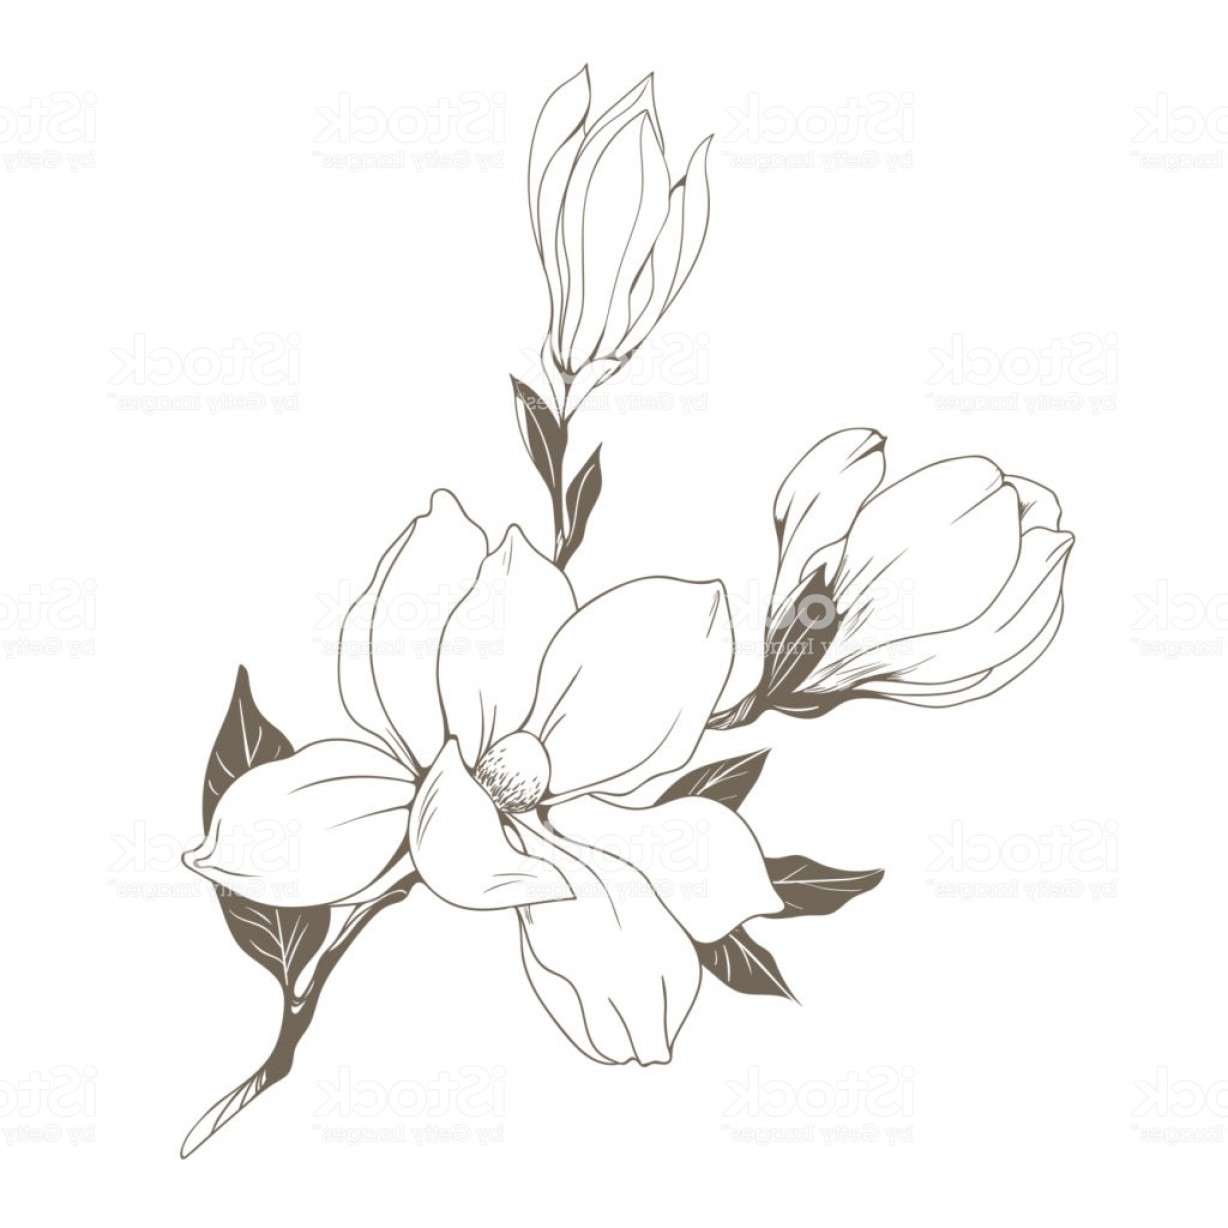 Magnolia Black And White Vector: Magnolia Flowers And Buds On White Vector Illustration Gm